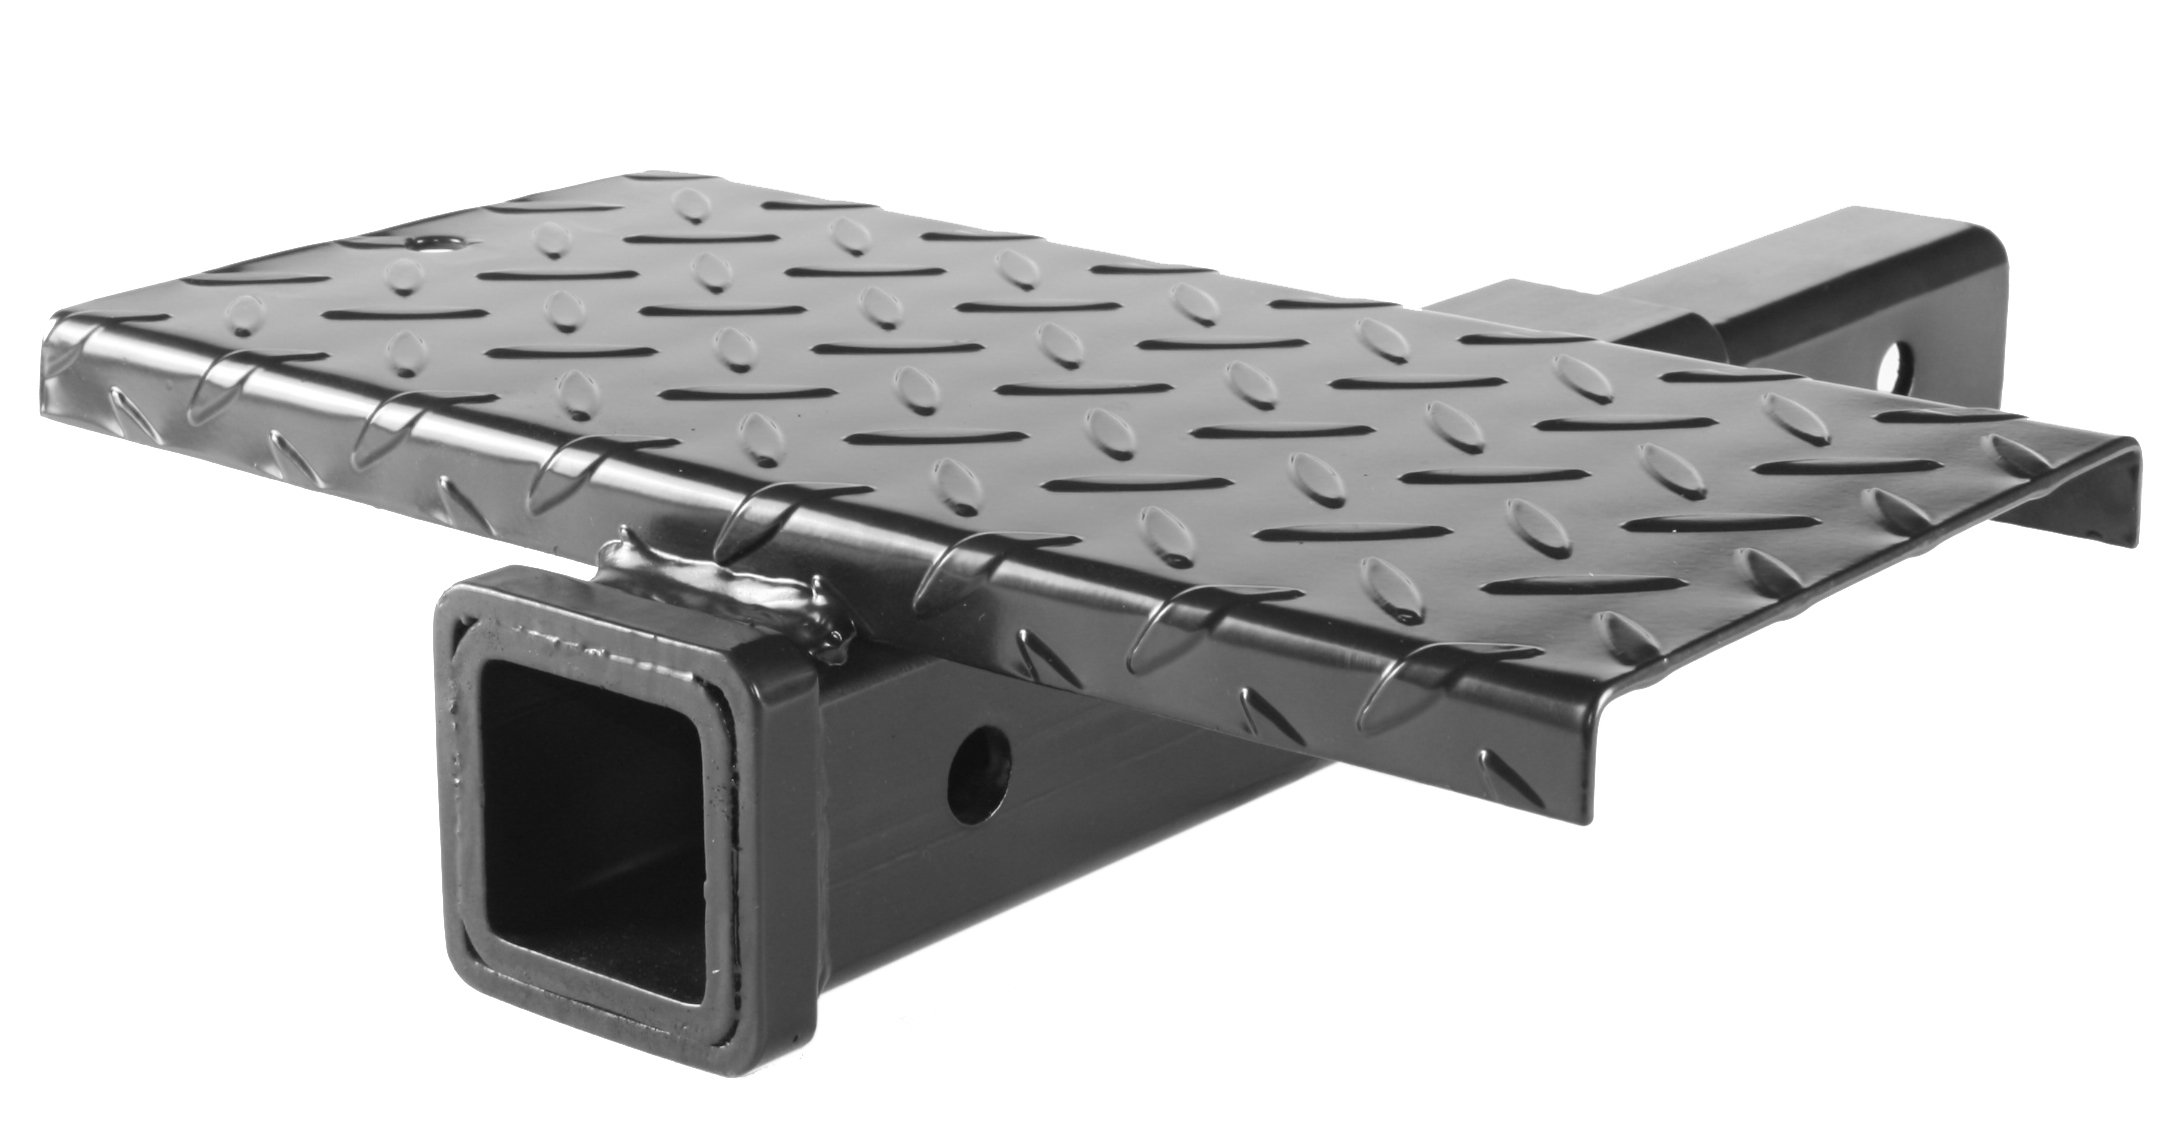 MaxxHaul 70069 Hitch Extender With Step, 4000-lb Max Towing Weight, 400-lb Tongue Weight. by MaxxHaul